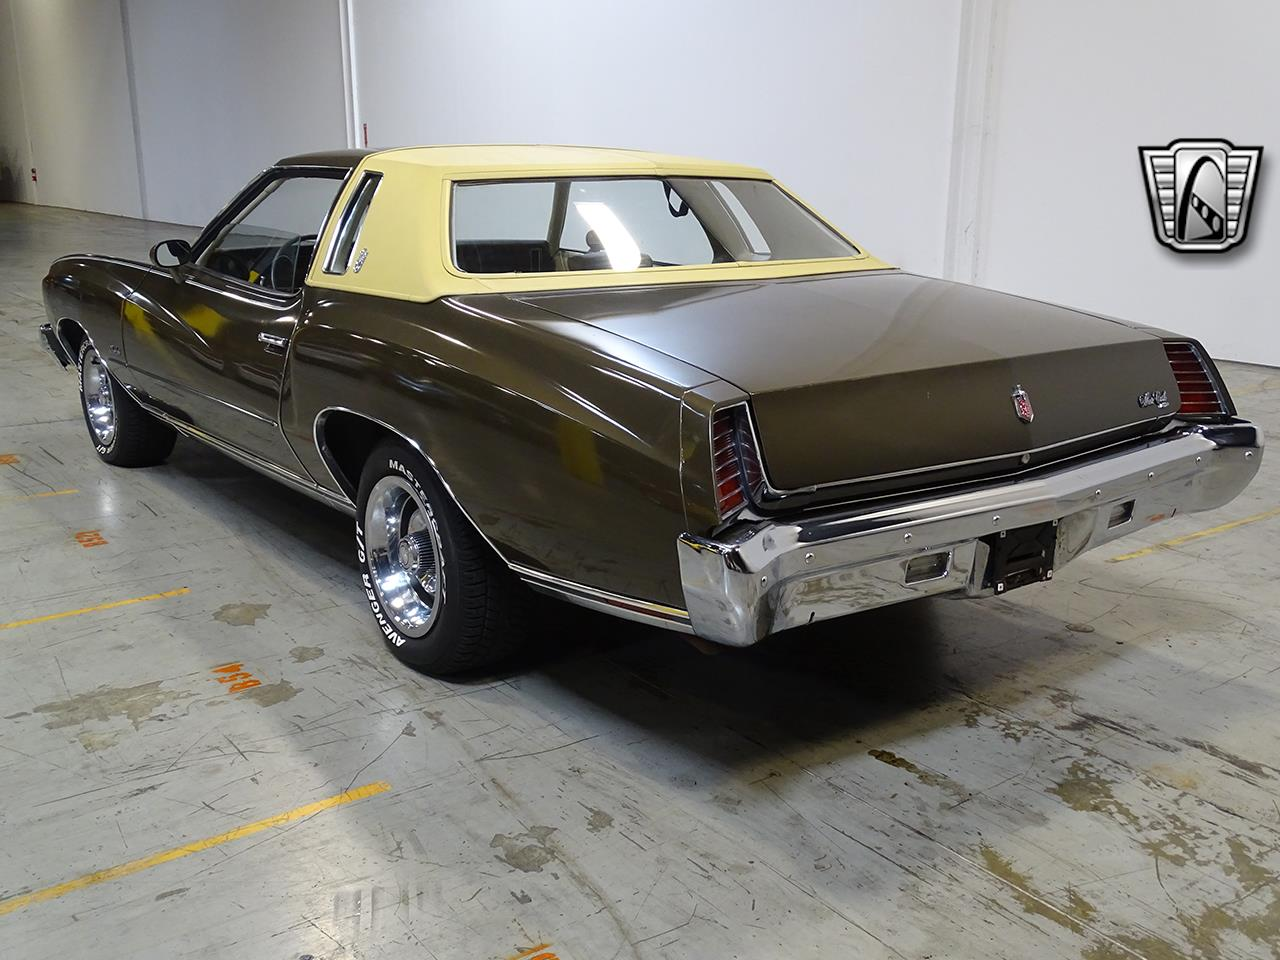 1973 Chevrolet Monte Carlo (CC-1358414) for sale in O'Fallon, Illinois